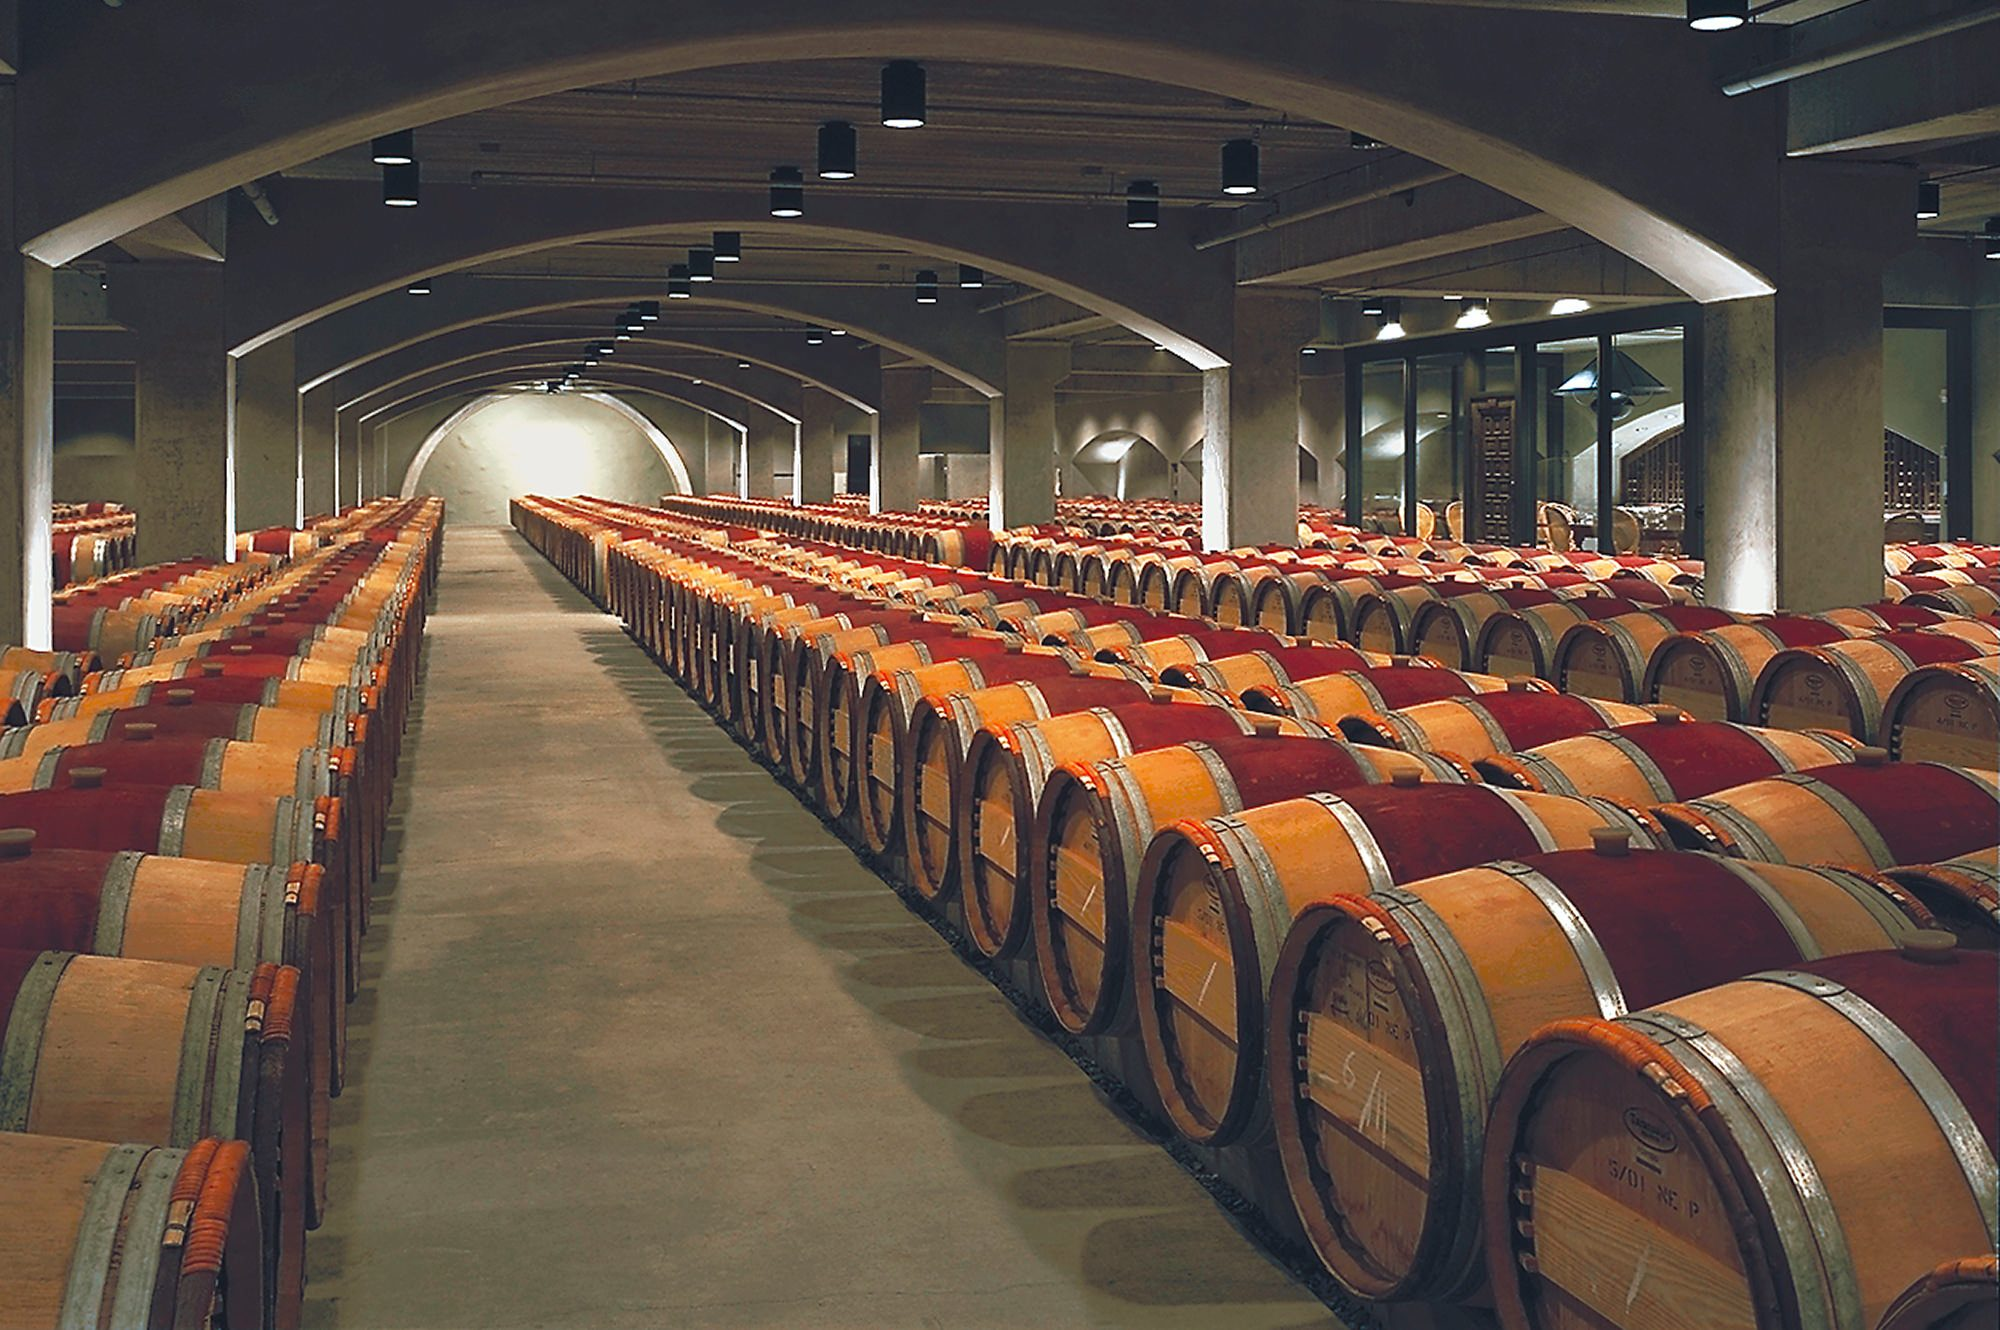 Wine barrel storage room at Robert Mondavi Winery